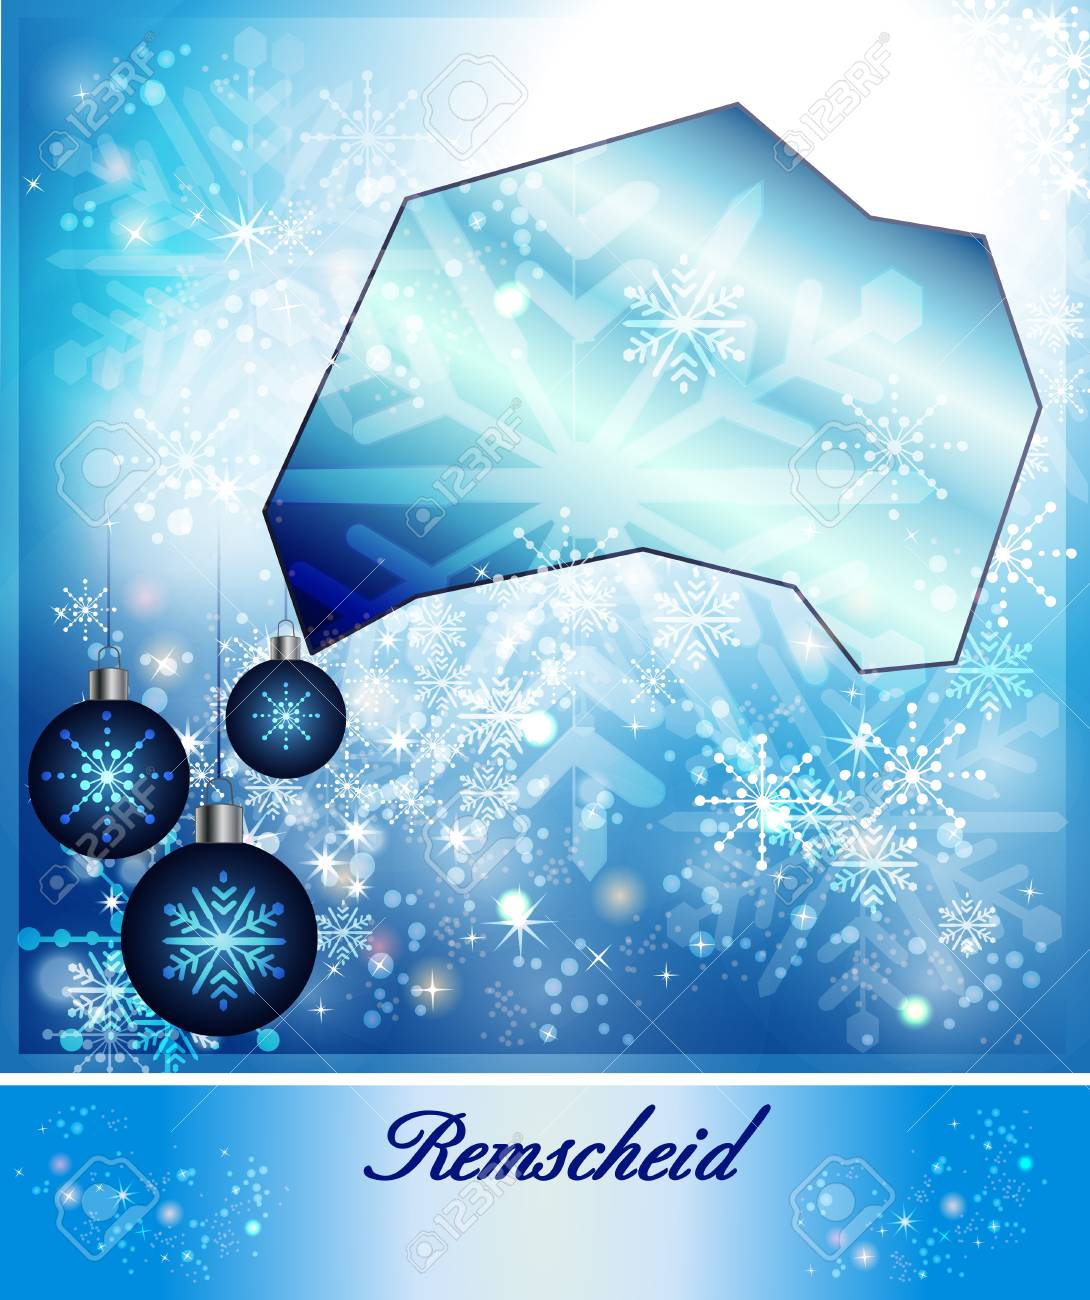 Map Of Remscheid In Christmas Design In Blue Stock Photo Picture